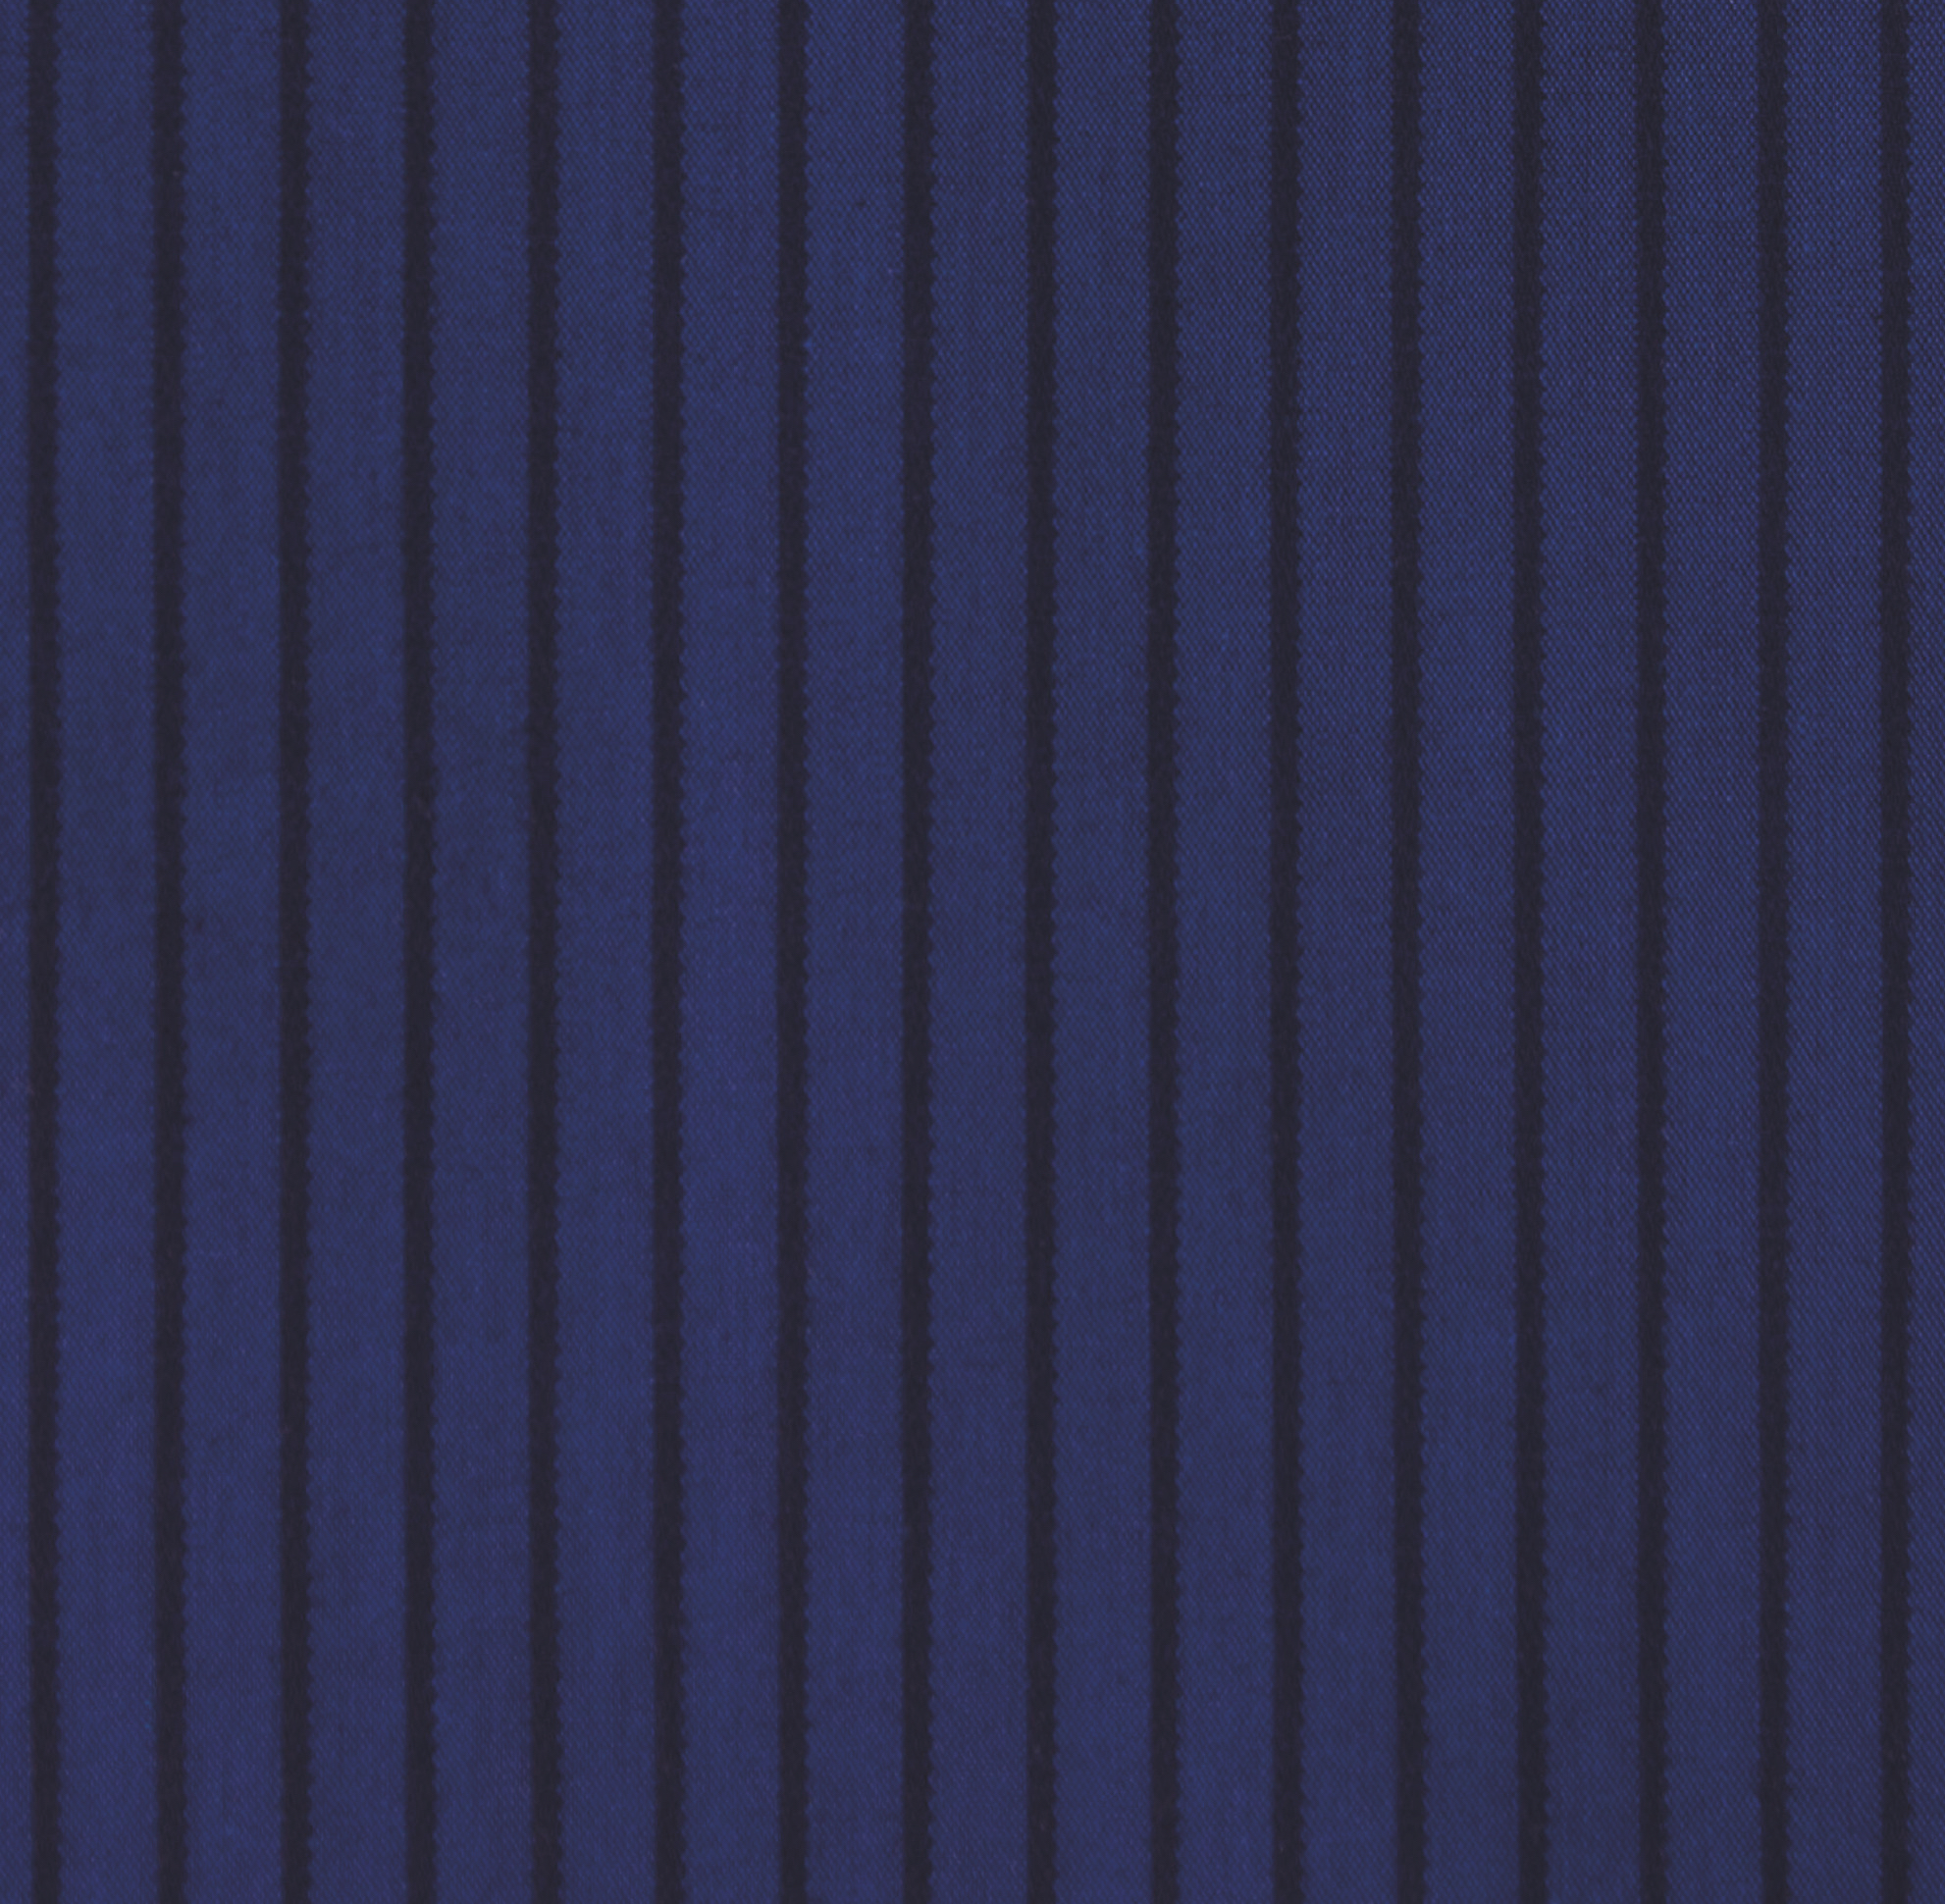 Buy tailor made shirts online - Presidents Range - Navy with Black Stripe